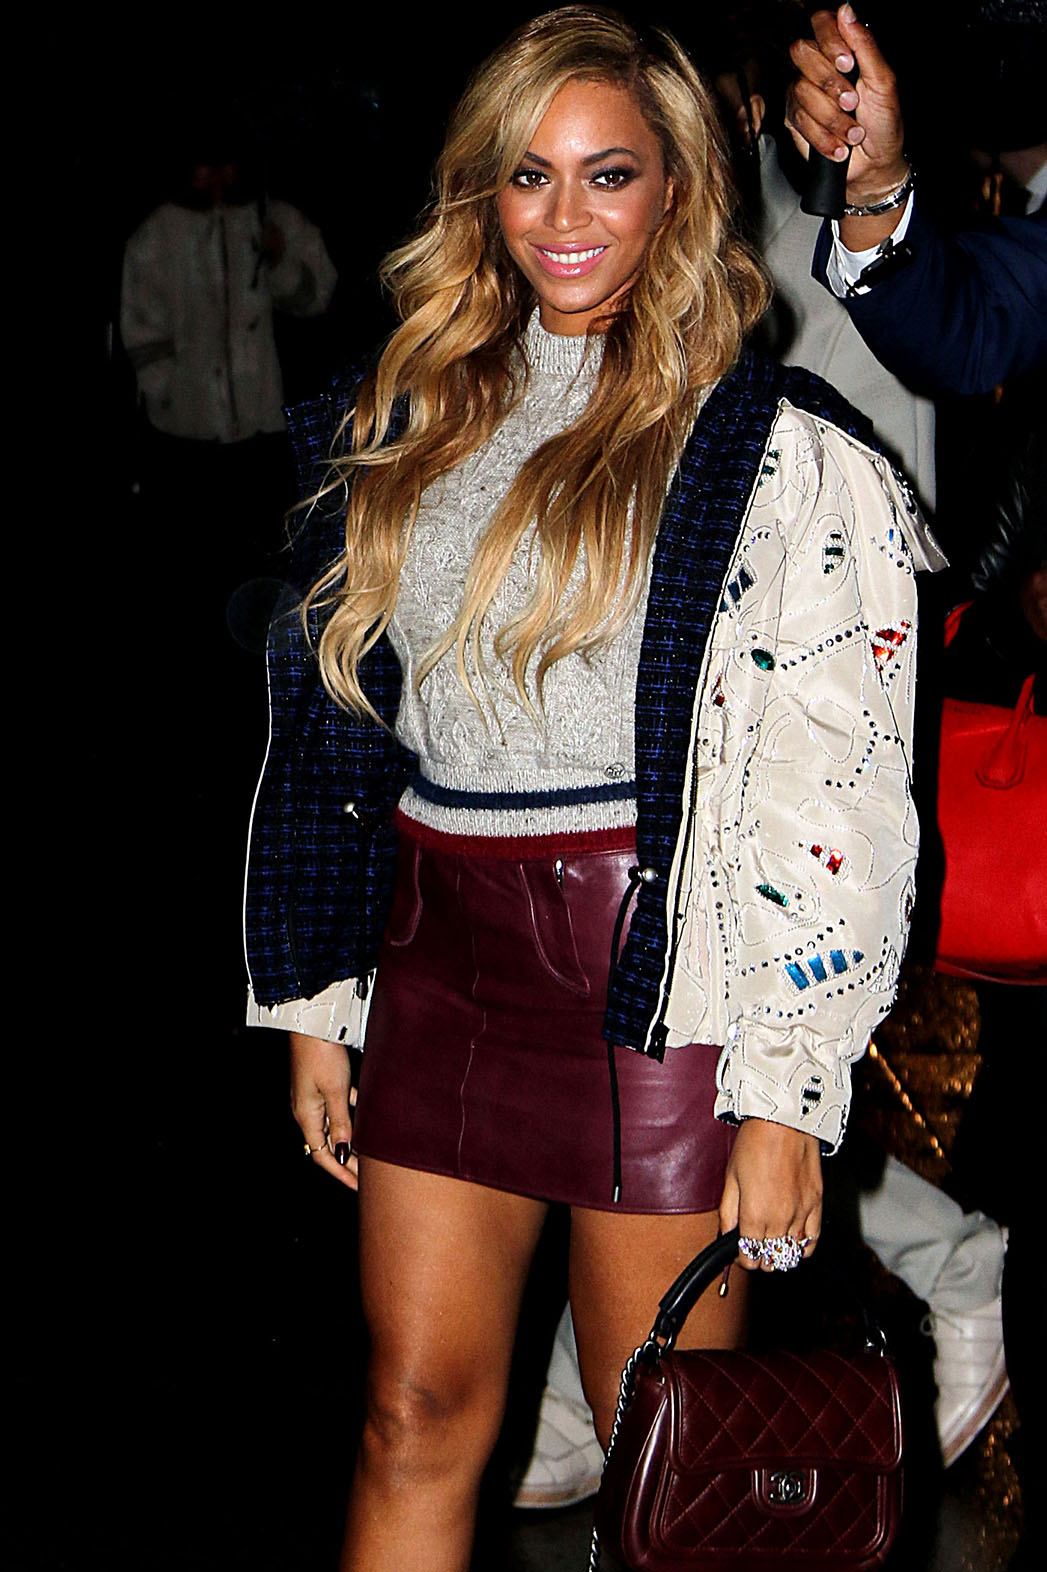 Beyonce arrives at a Chanel Fashion Show - P 2015